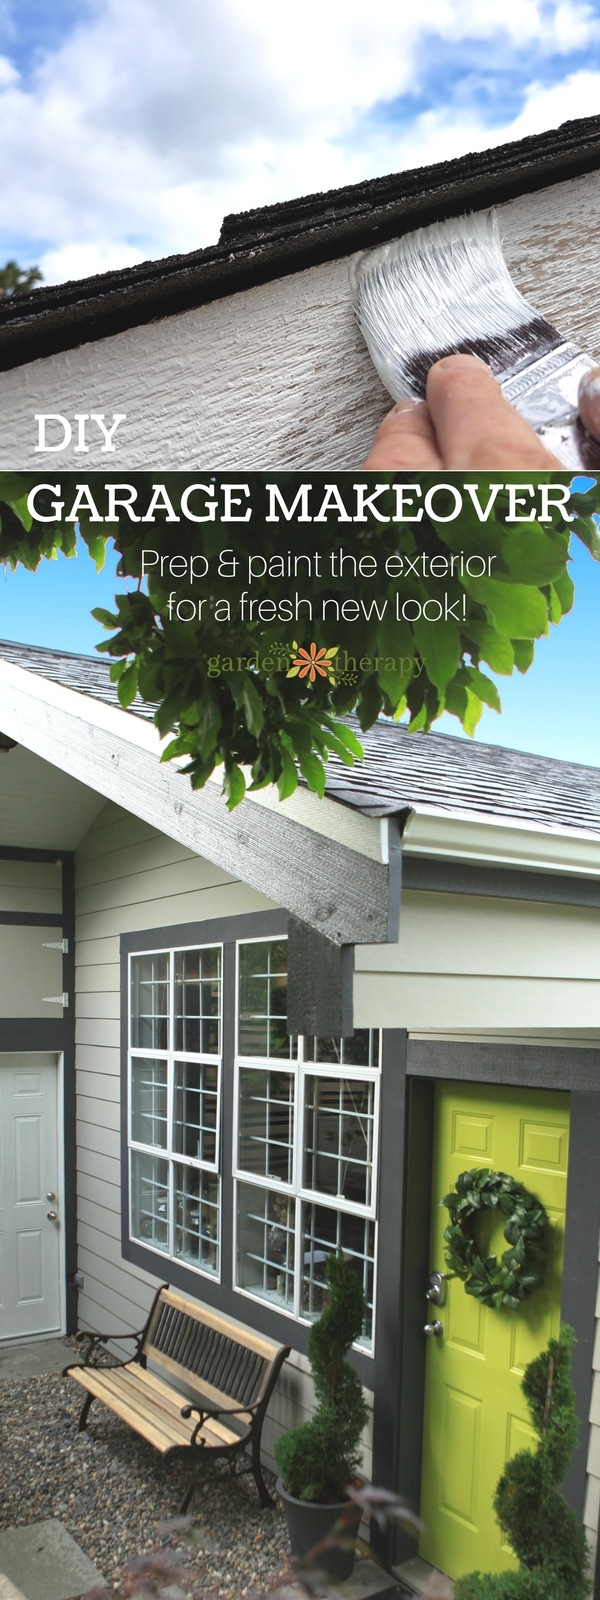 She Shed Exterior Garage Makeover How to Prep and Paint the Exterior